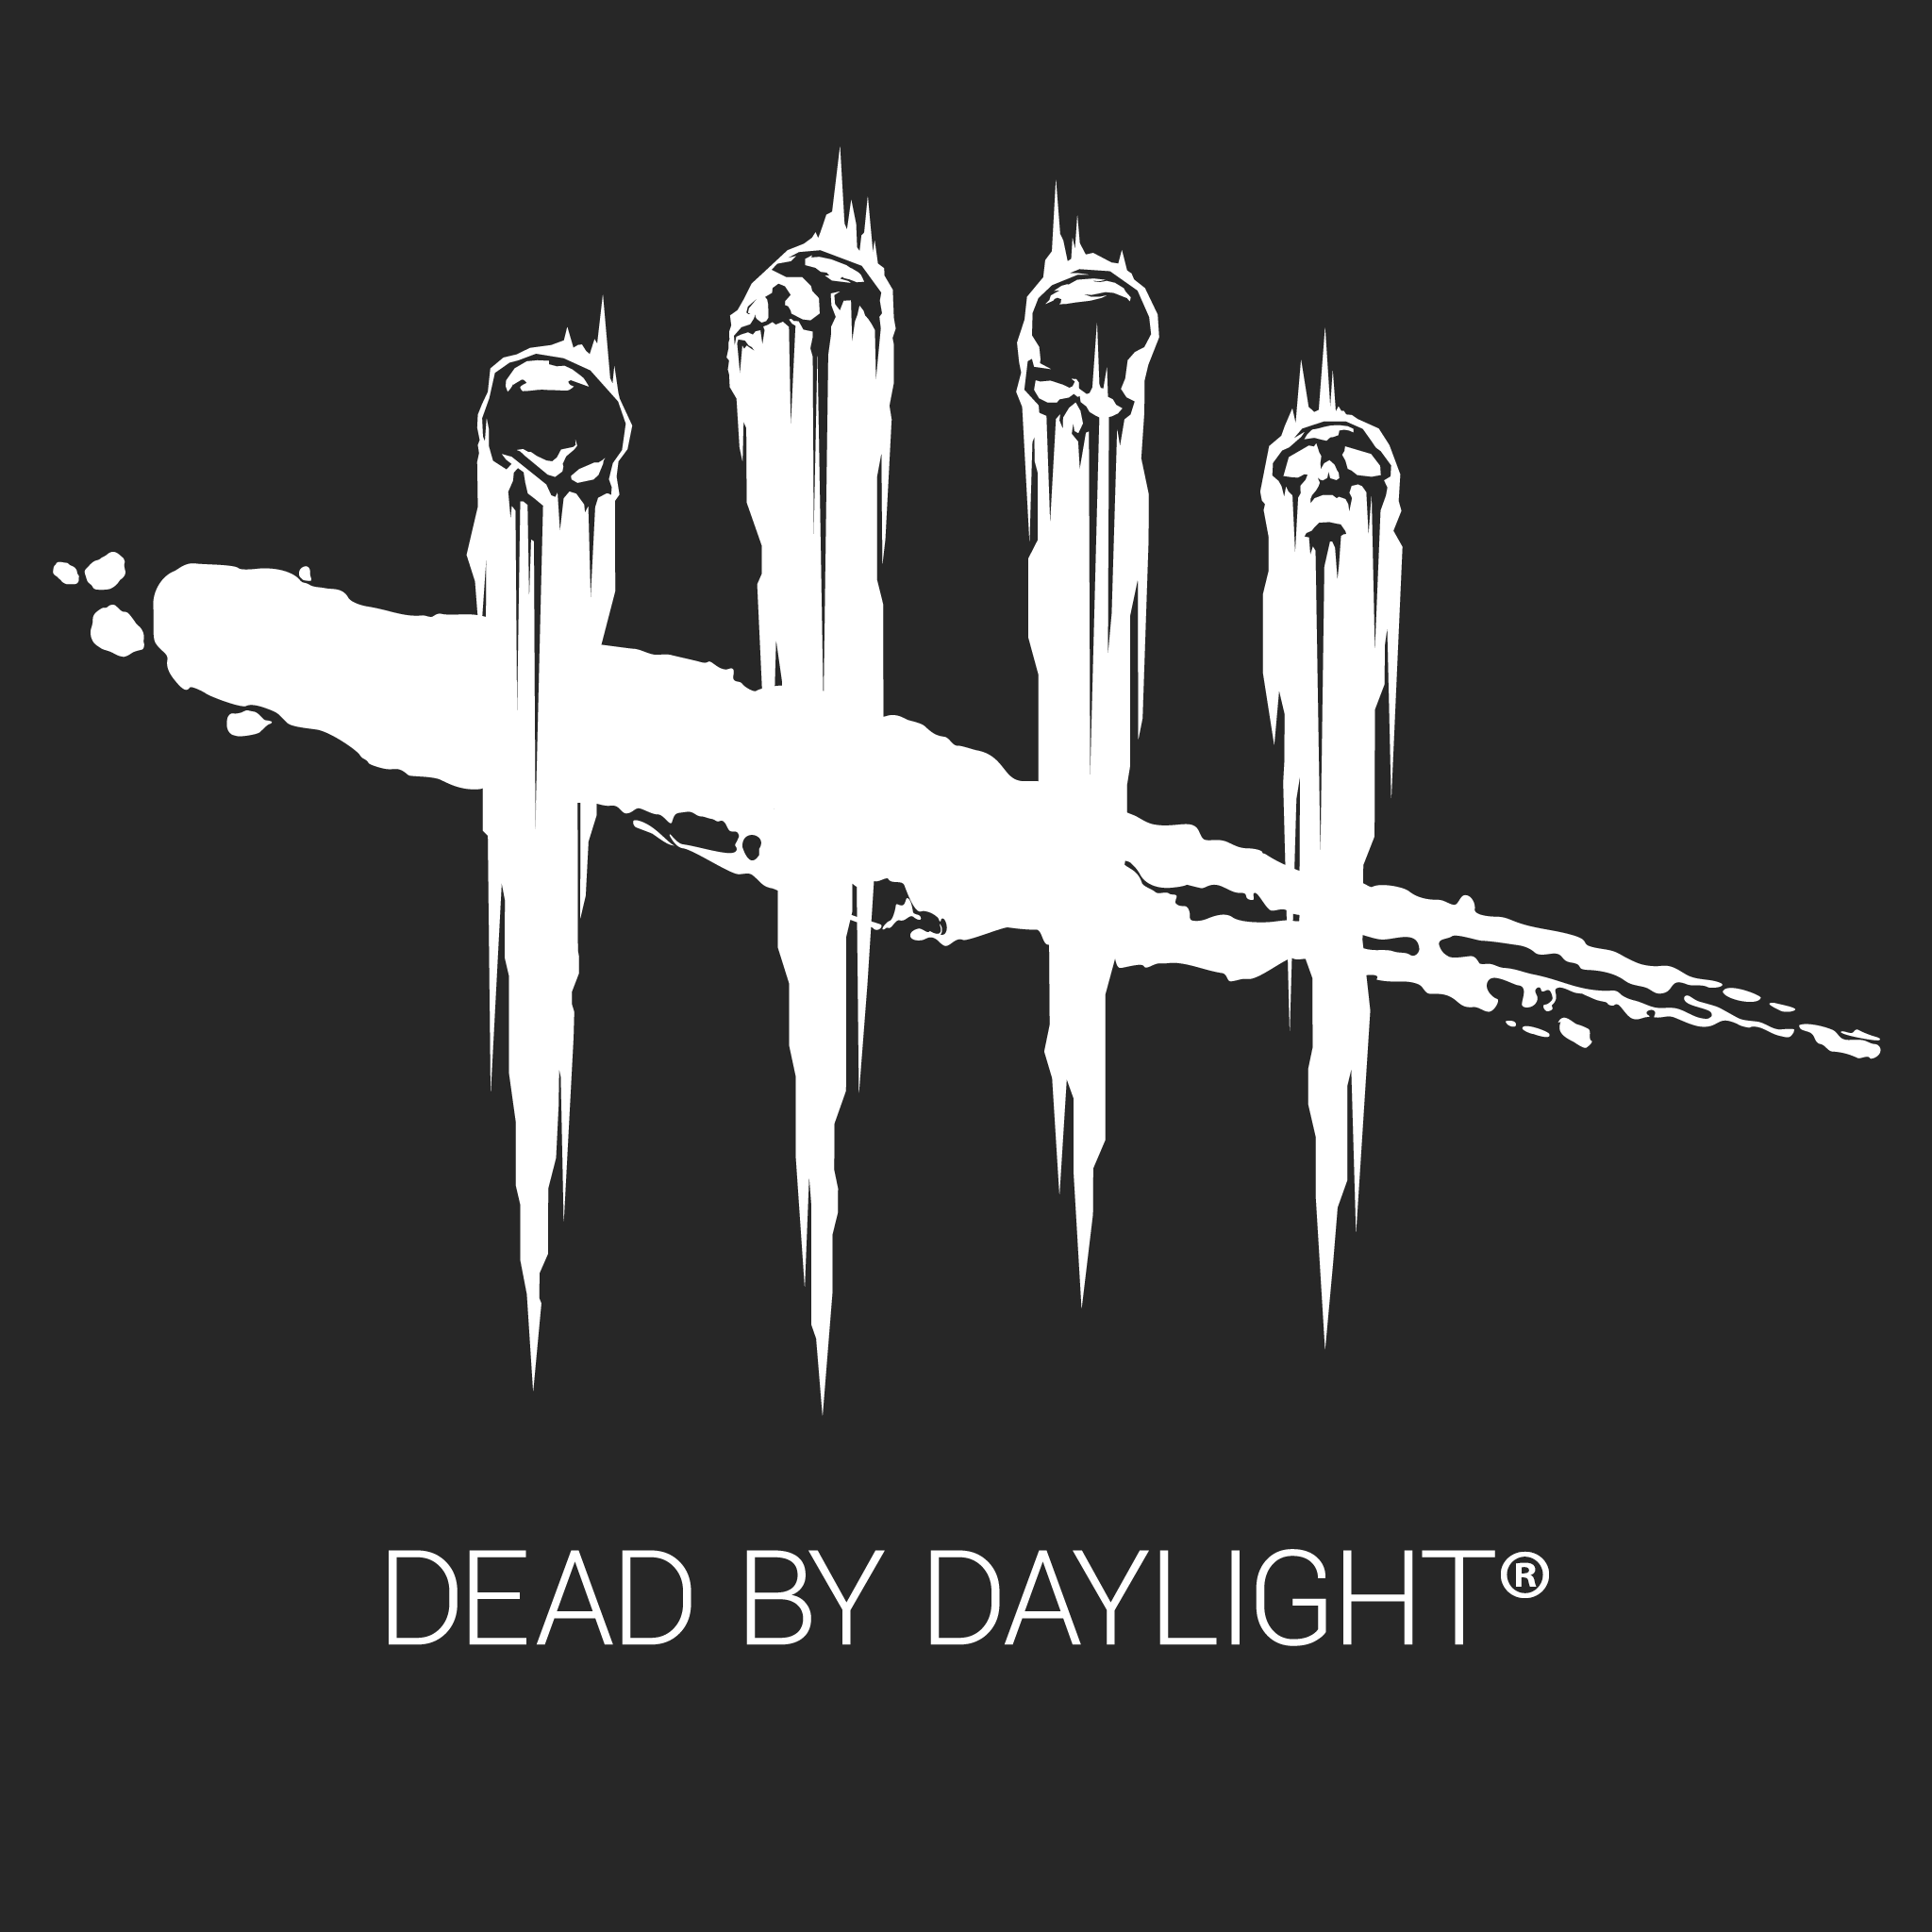 Dead By Daylight Announced For Ios And Android 336,509 likes · 10,375 talking about this. dead by daylight announced for ios and